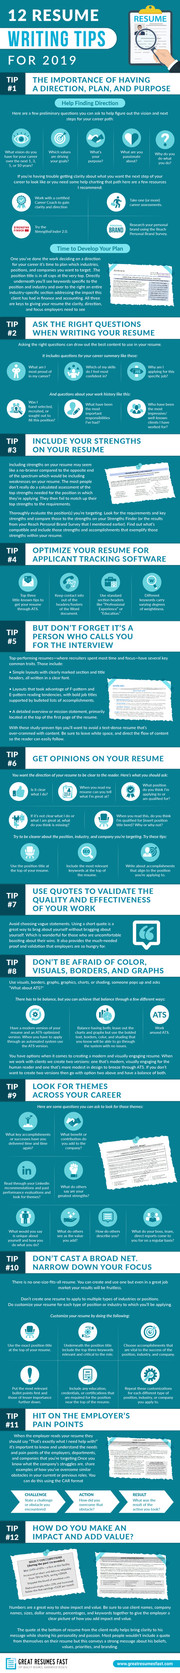 12 Resume Writing Tips for 2019